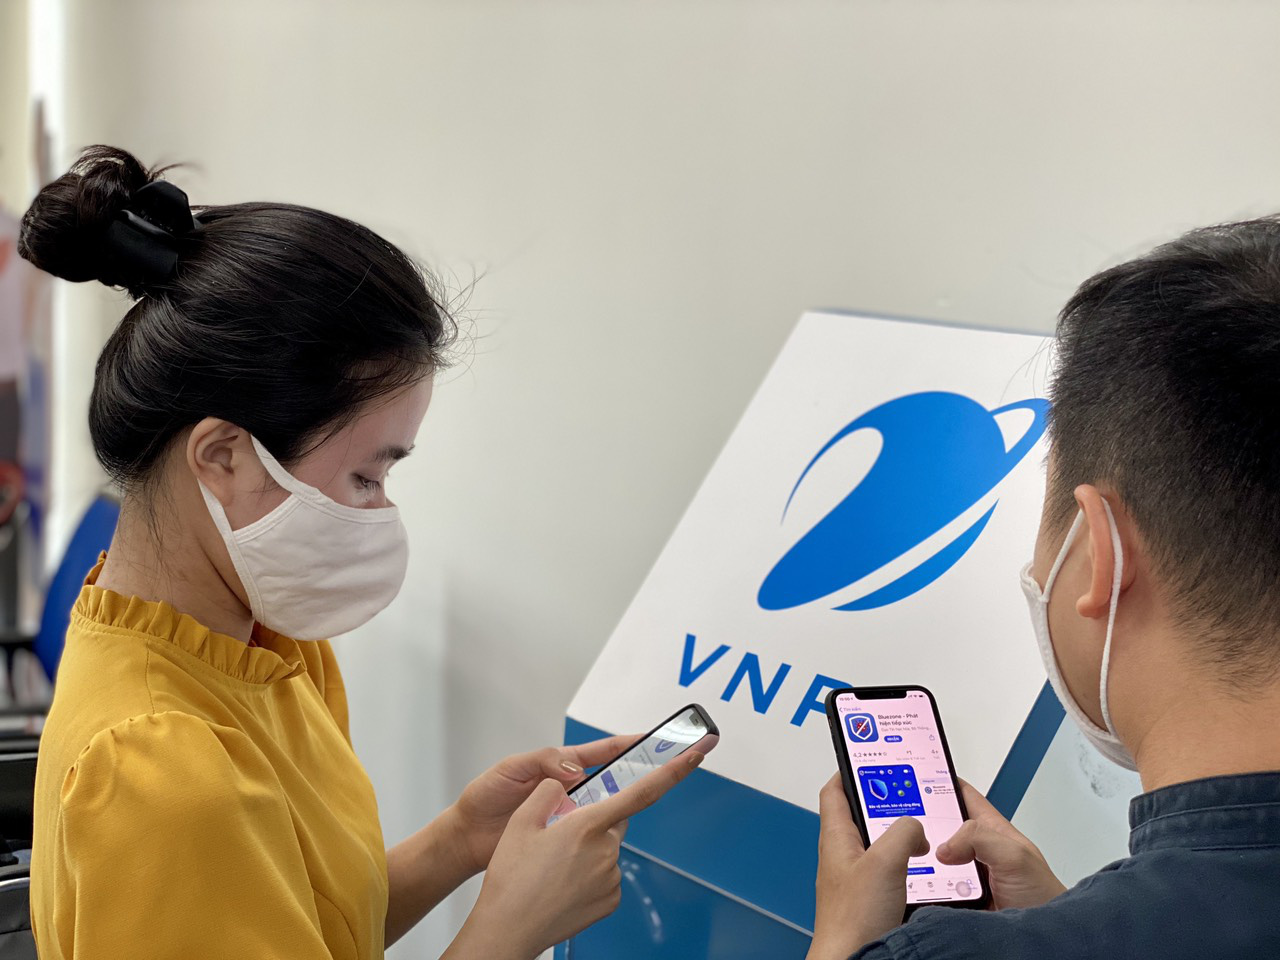 Vietnam mobile carriers offer free data to boost contact-tracing app usage